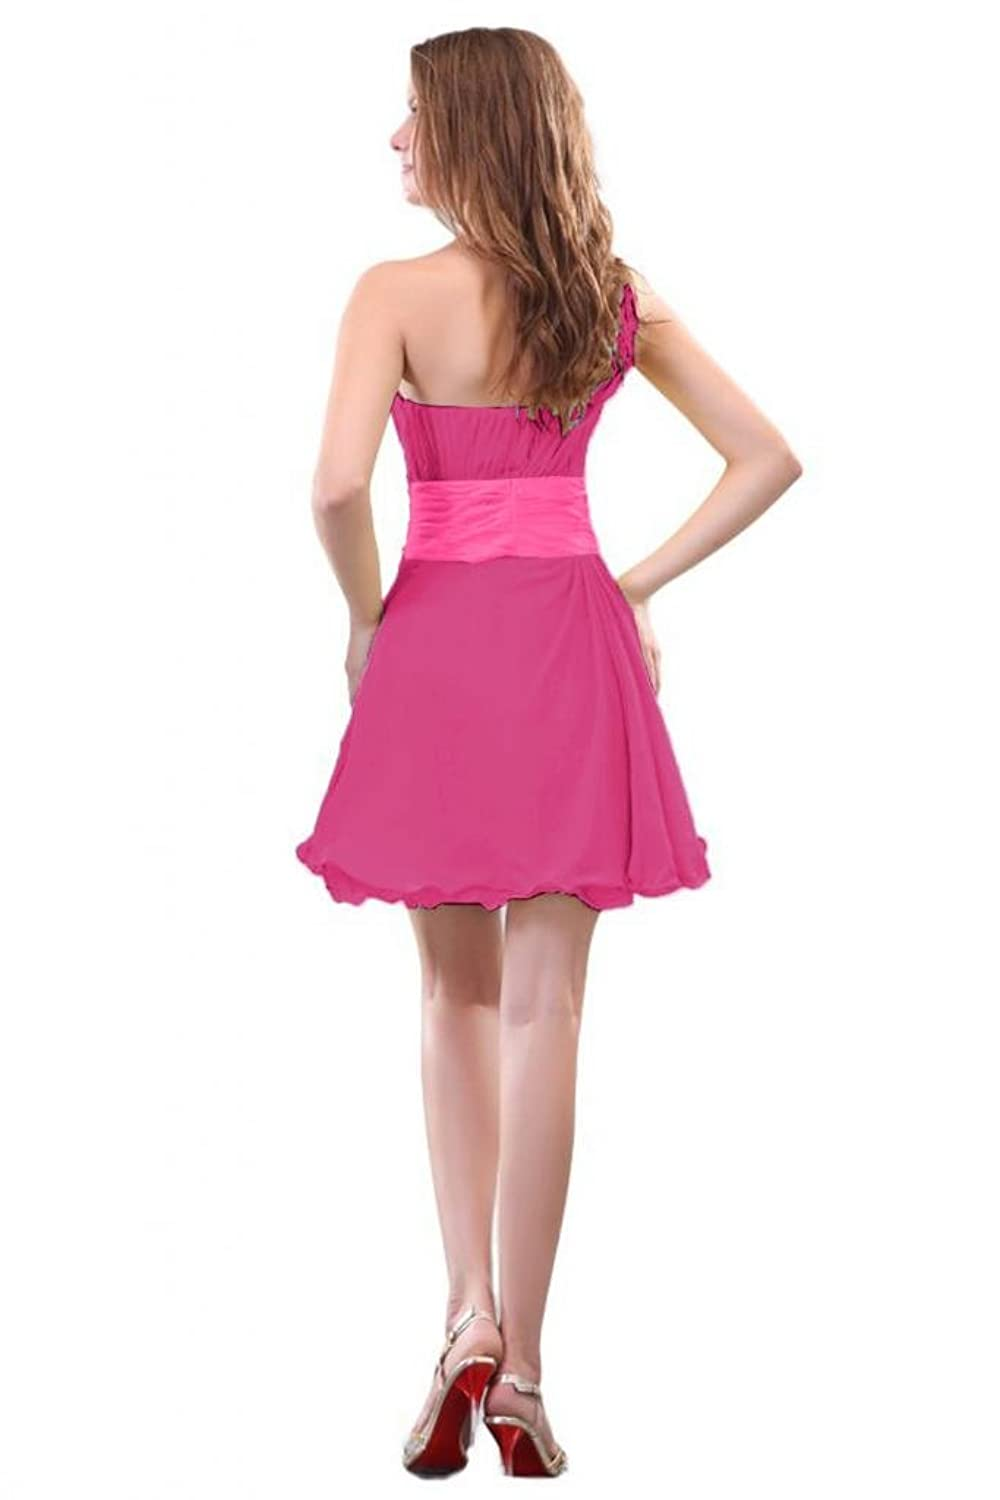 Sunvary New A Line Short Homecoming Dresses One-Shoudler Chiffon Cocktail Party Dresses